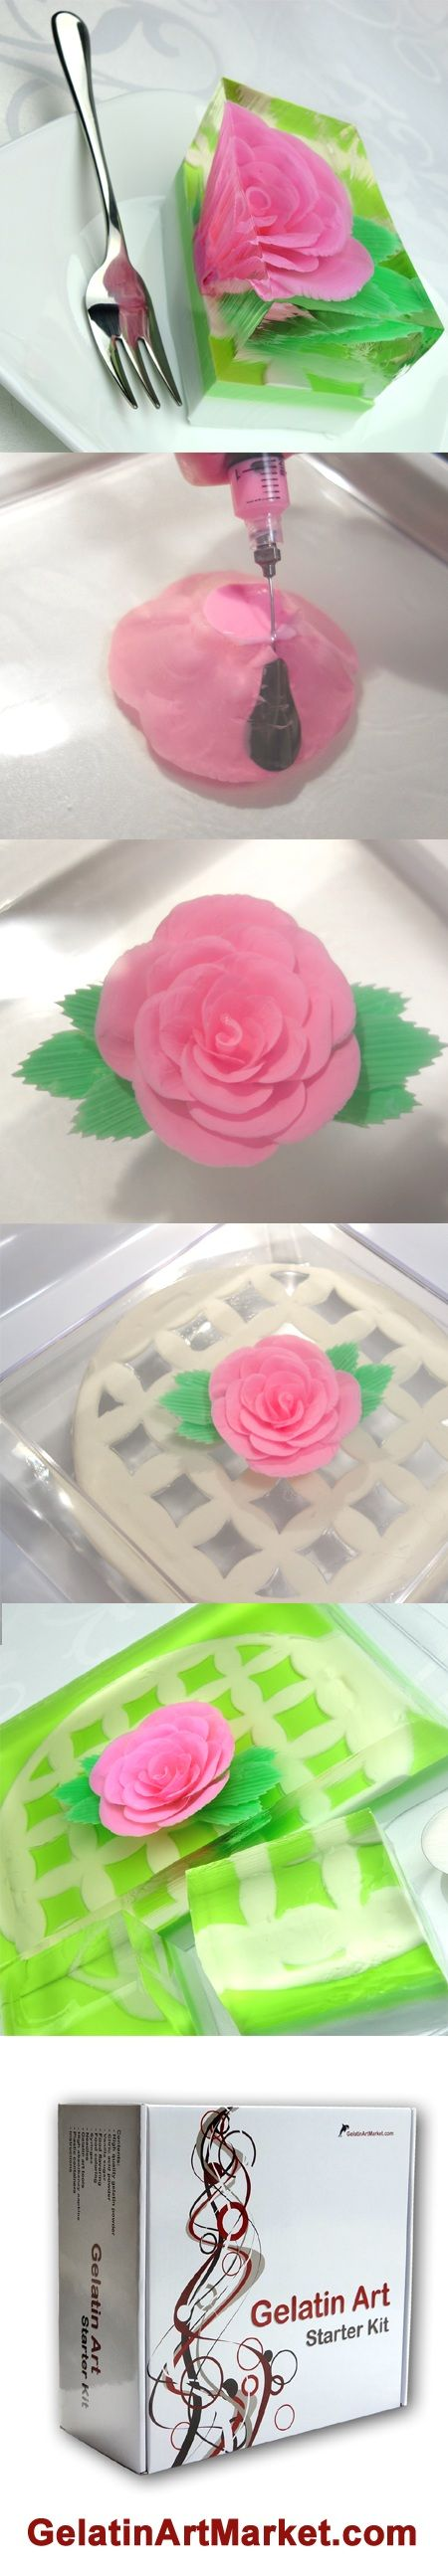 Learn how to make gelatin art flower cakes  https://gelatinartmarket.com/blogs/news/145422791-easy-gelatin-art-cake-background